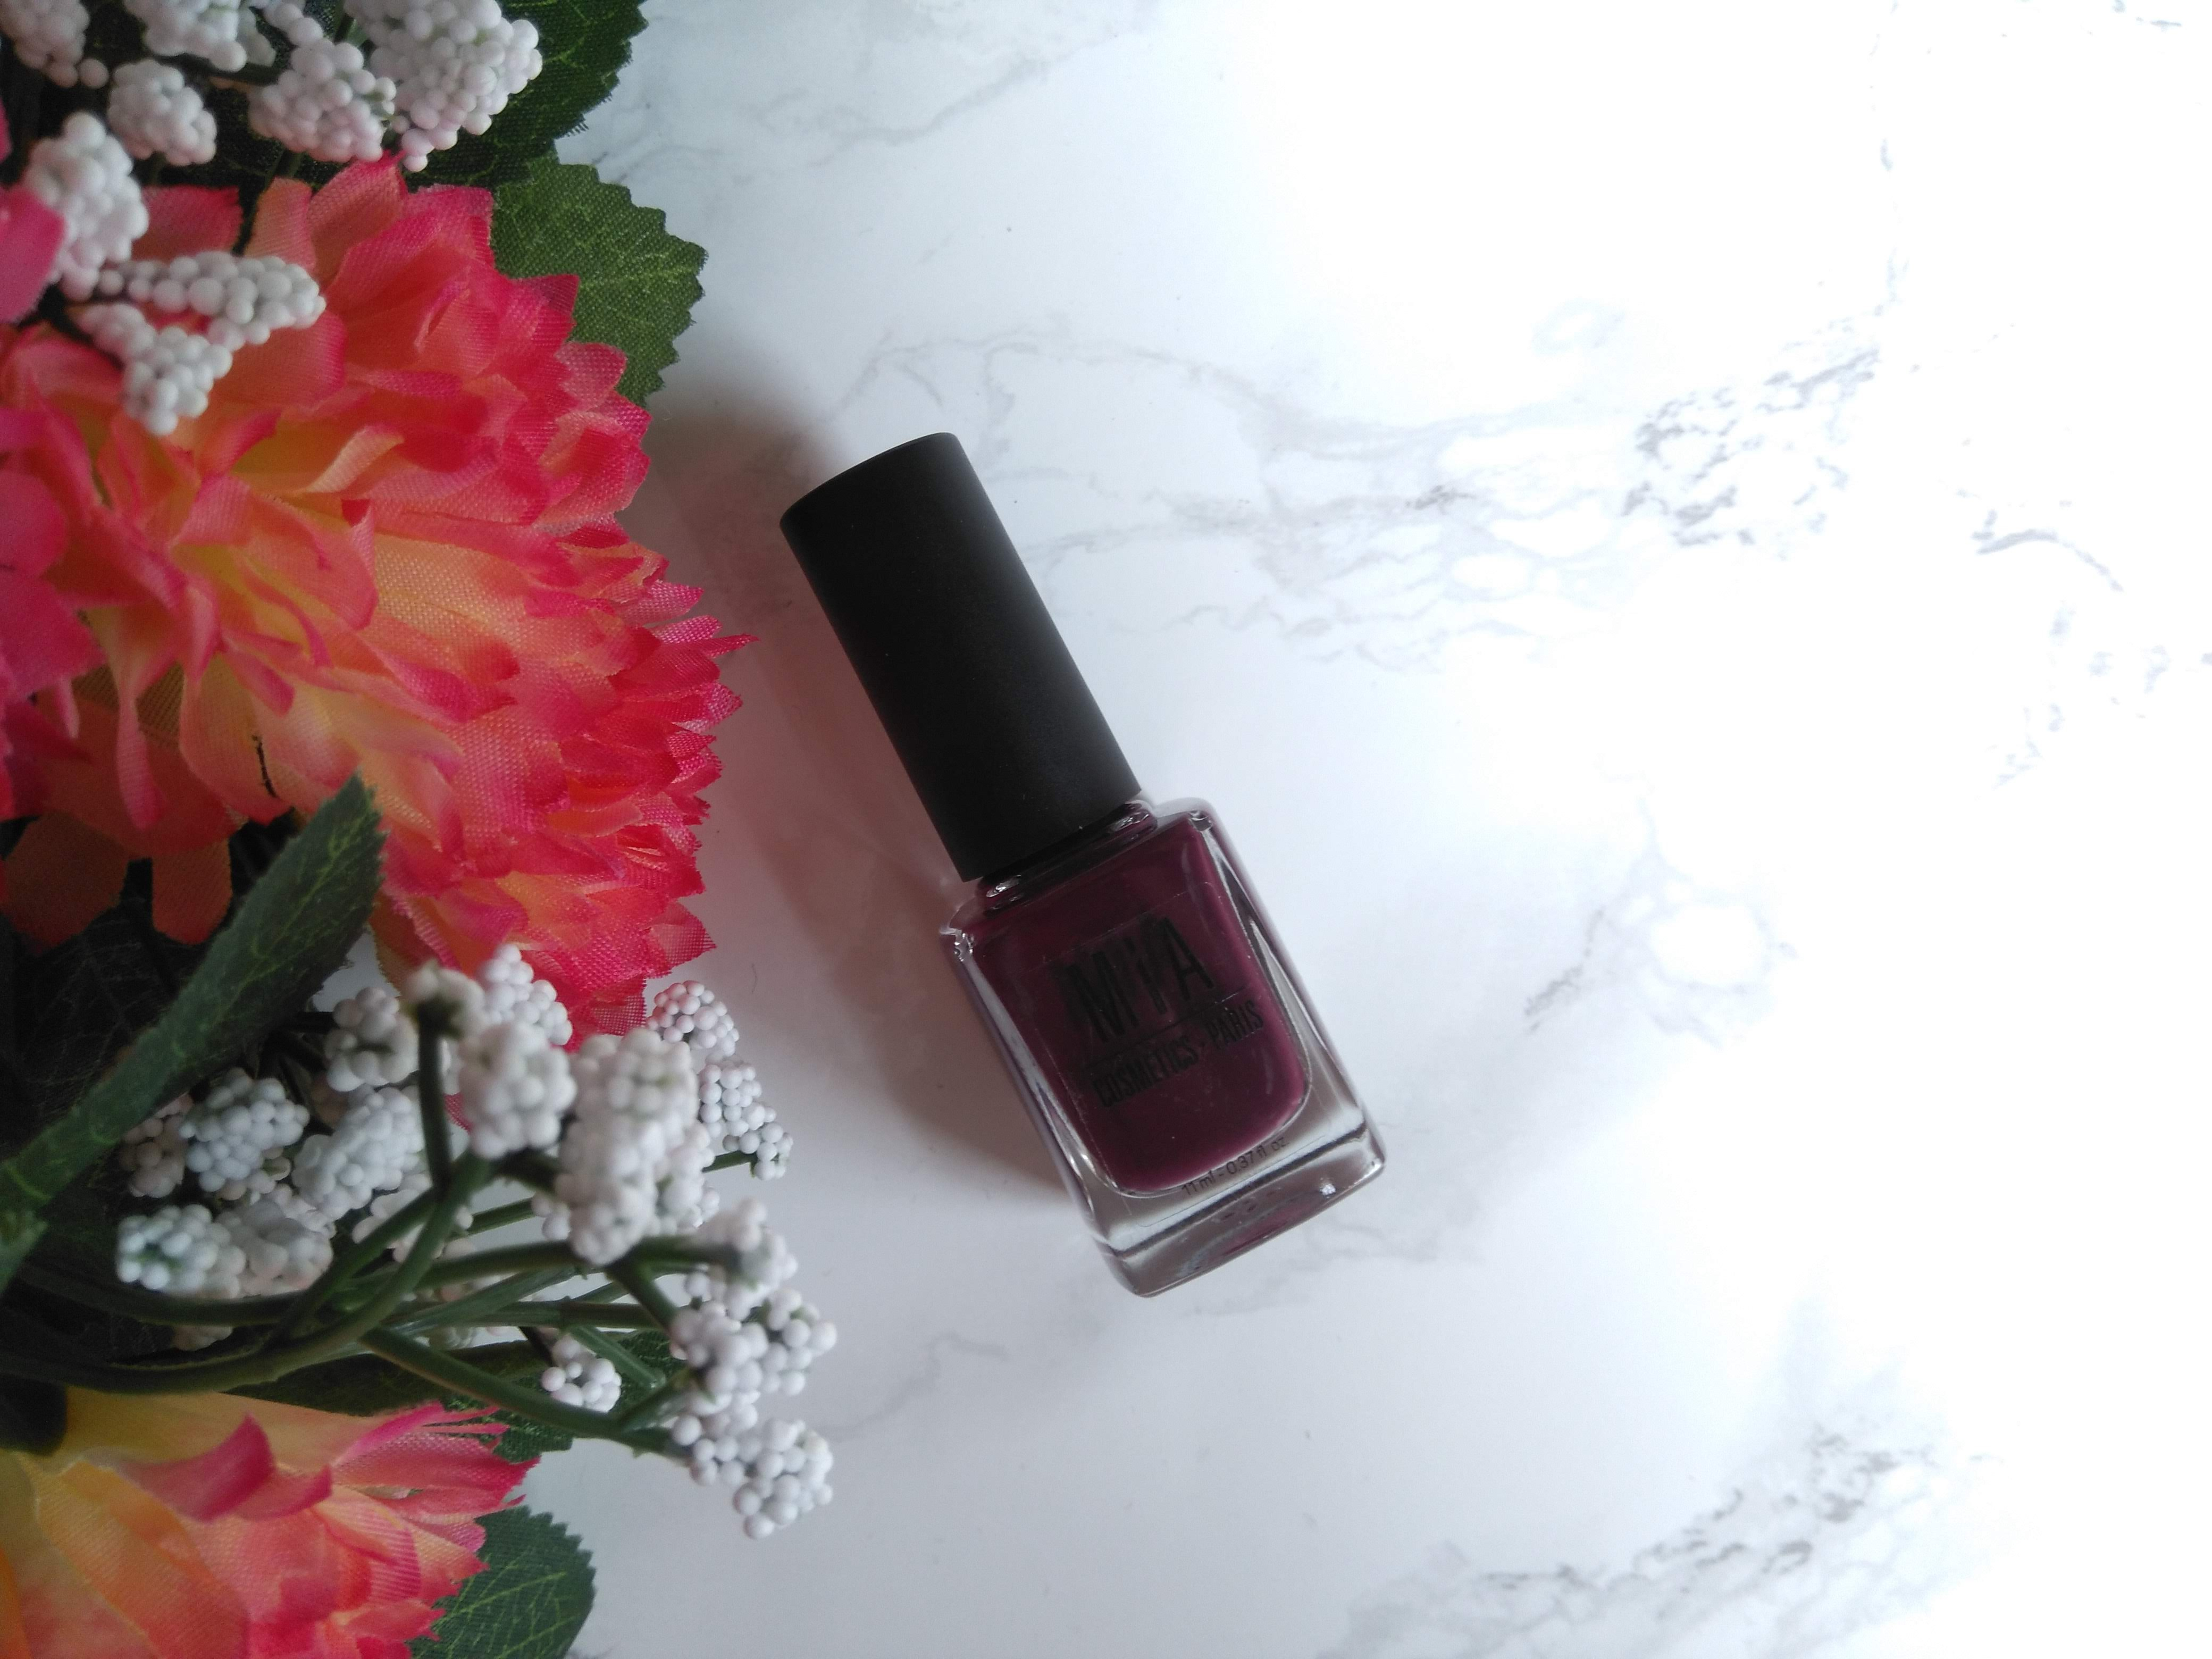 MIA Cosmetics Paris Nail Polish 'Rustic Wine'